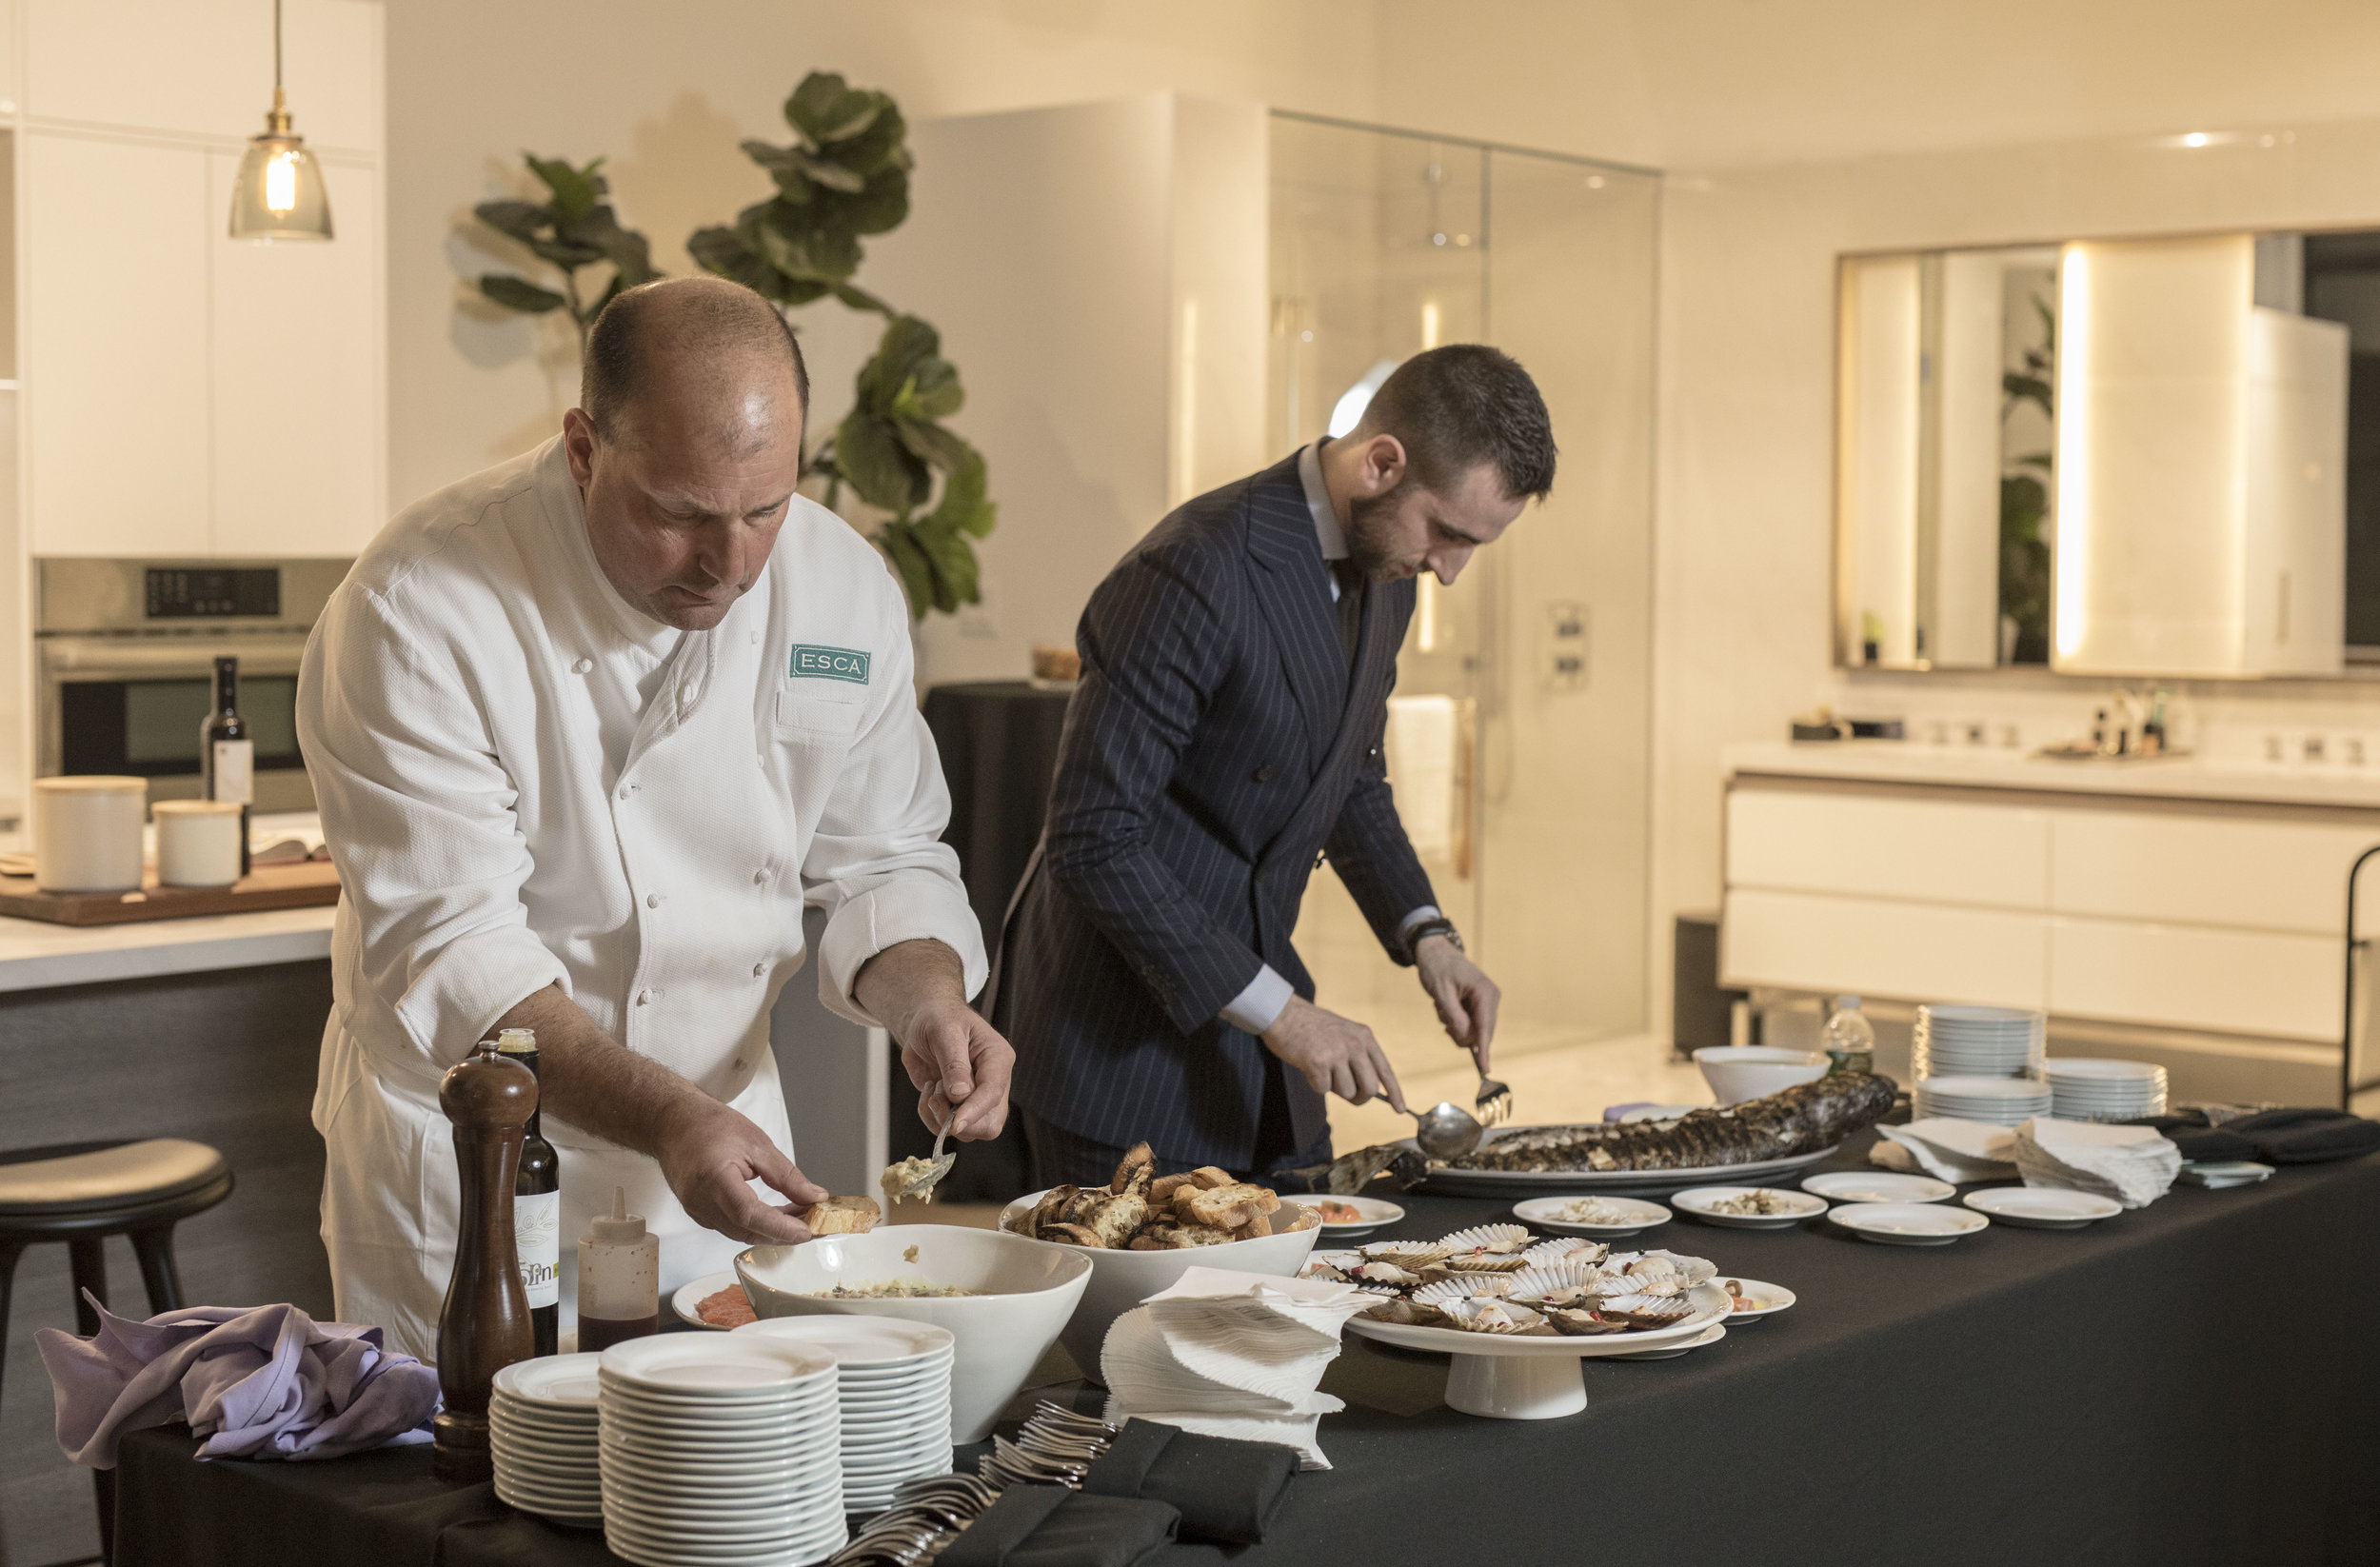 Esca Restaurant Douglas Elliman Development Marketing And Charlie West Team Up For A Swanky Launch Event.JPG